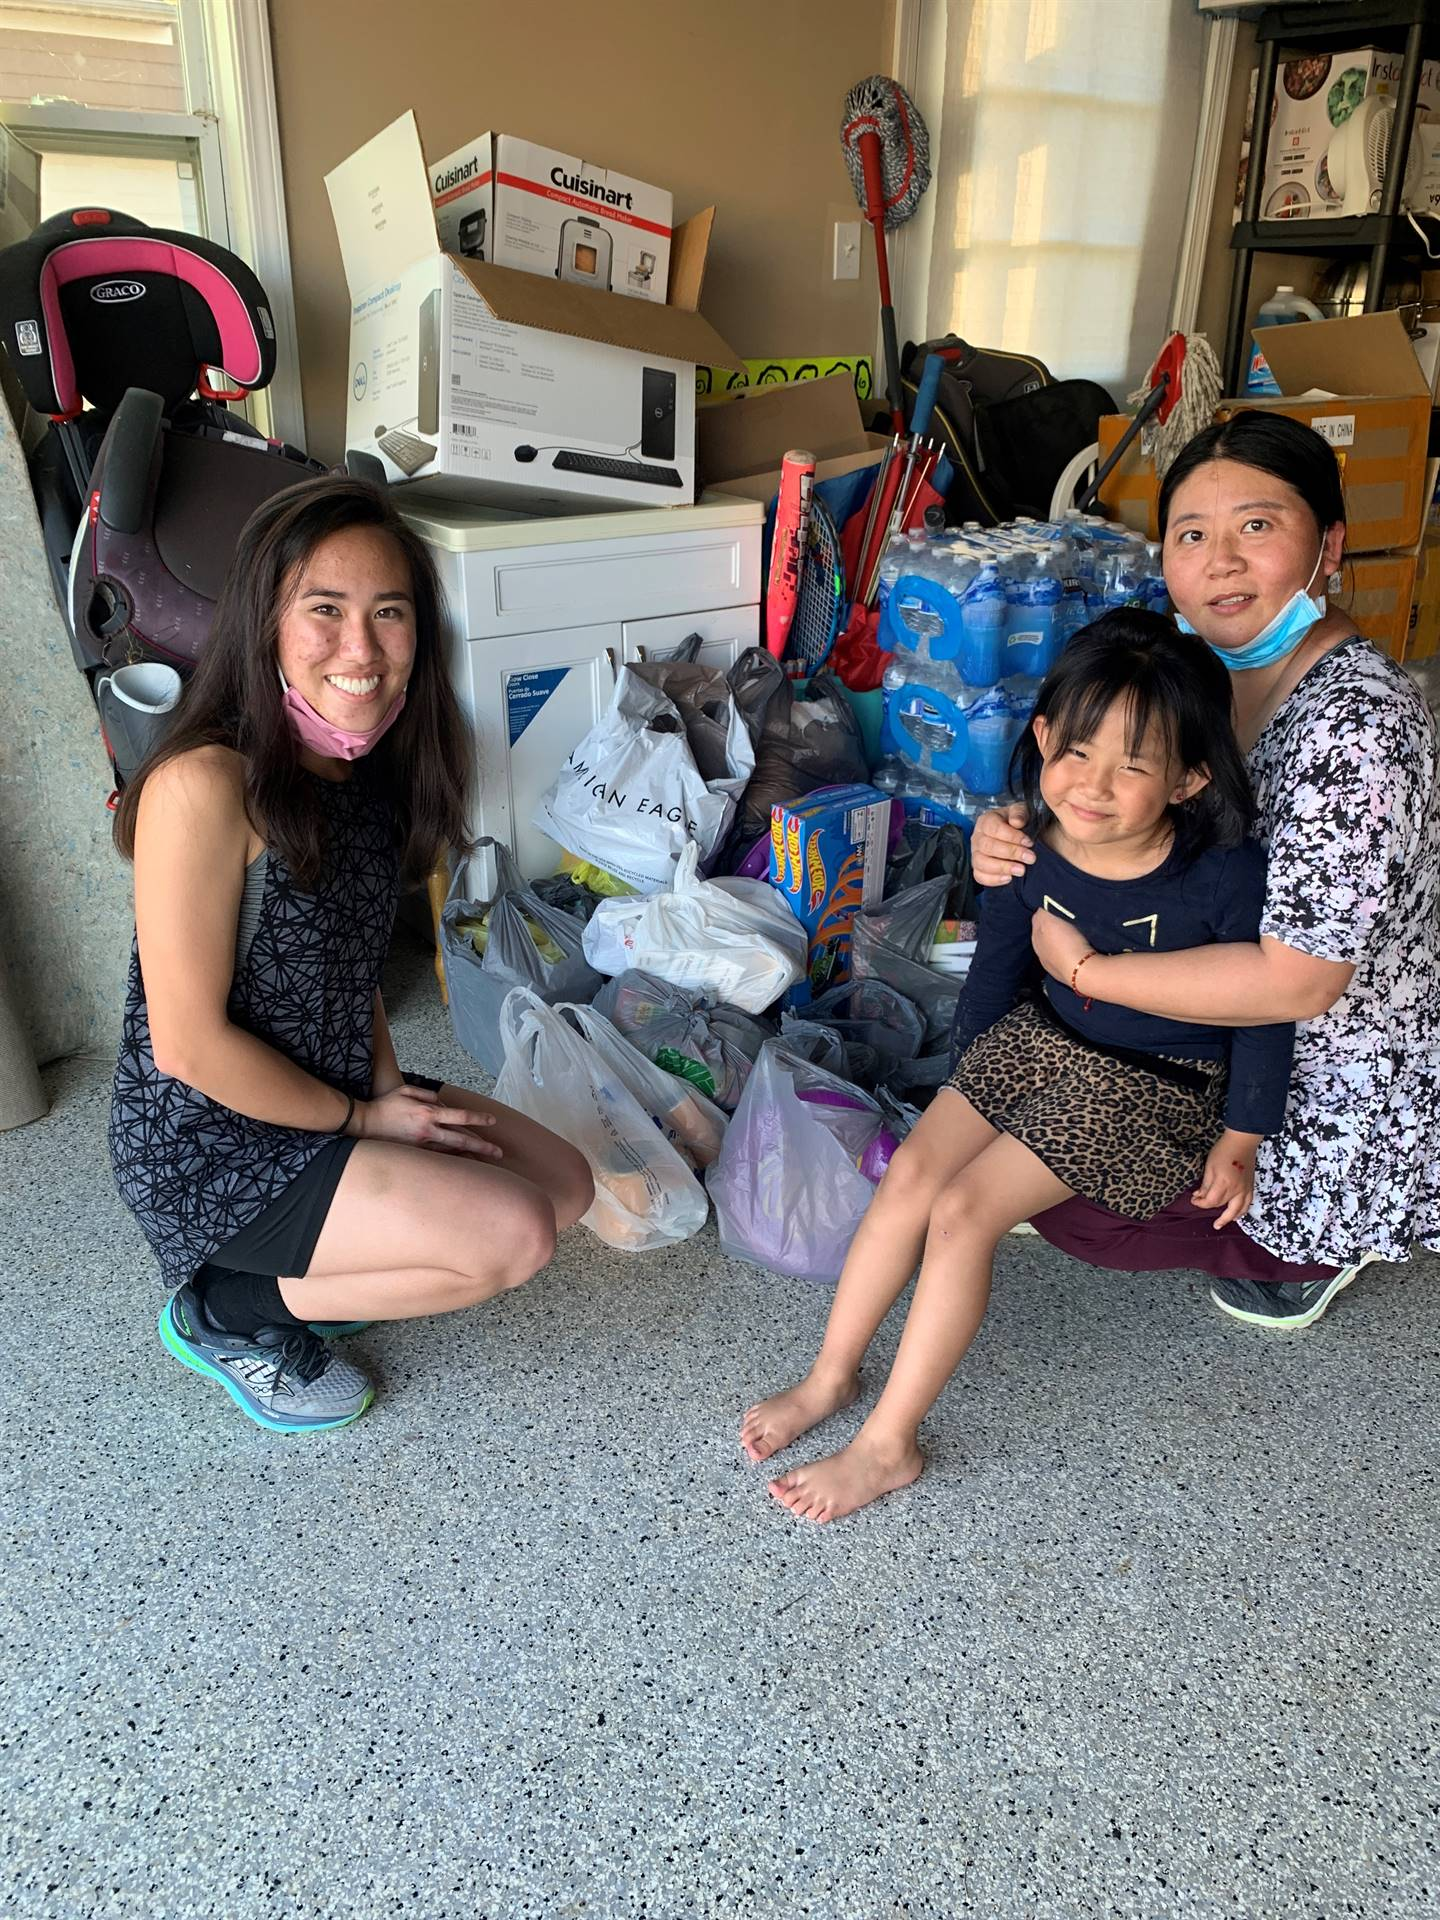 Excited to received donations